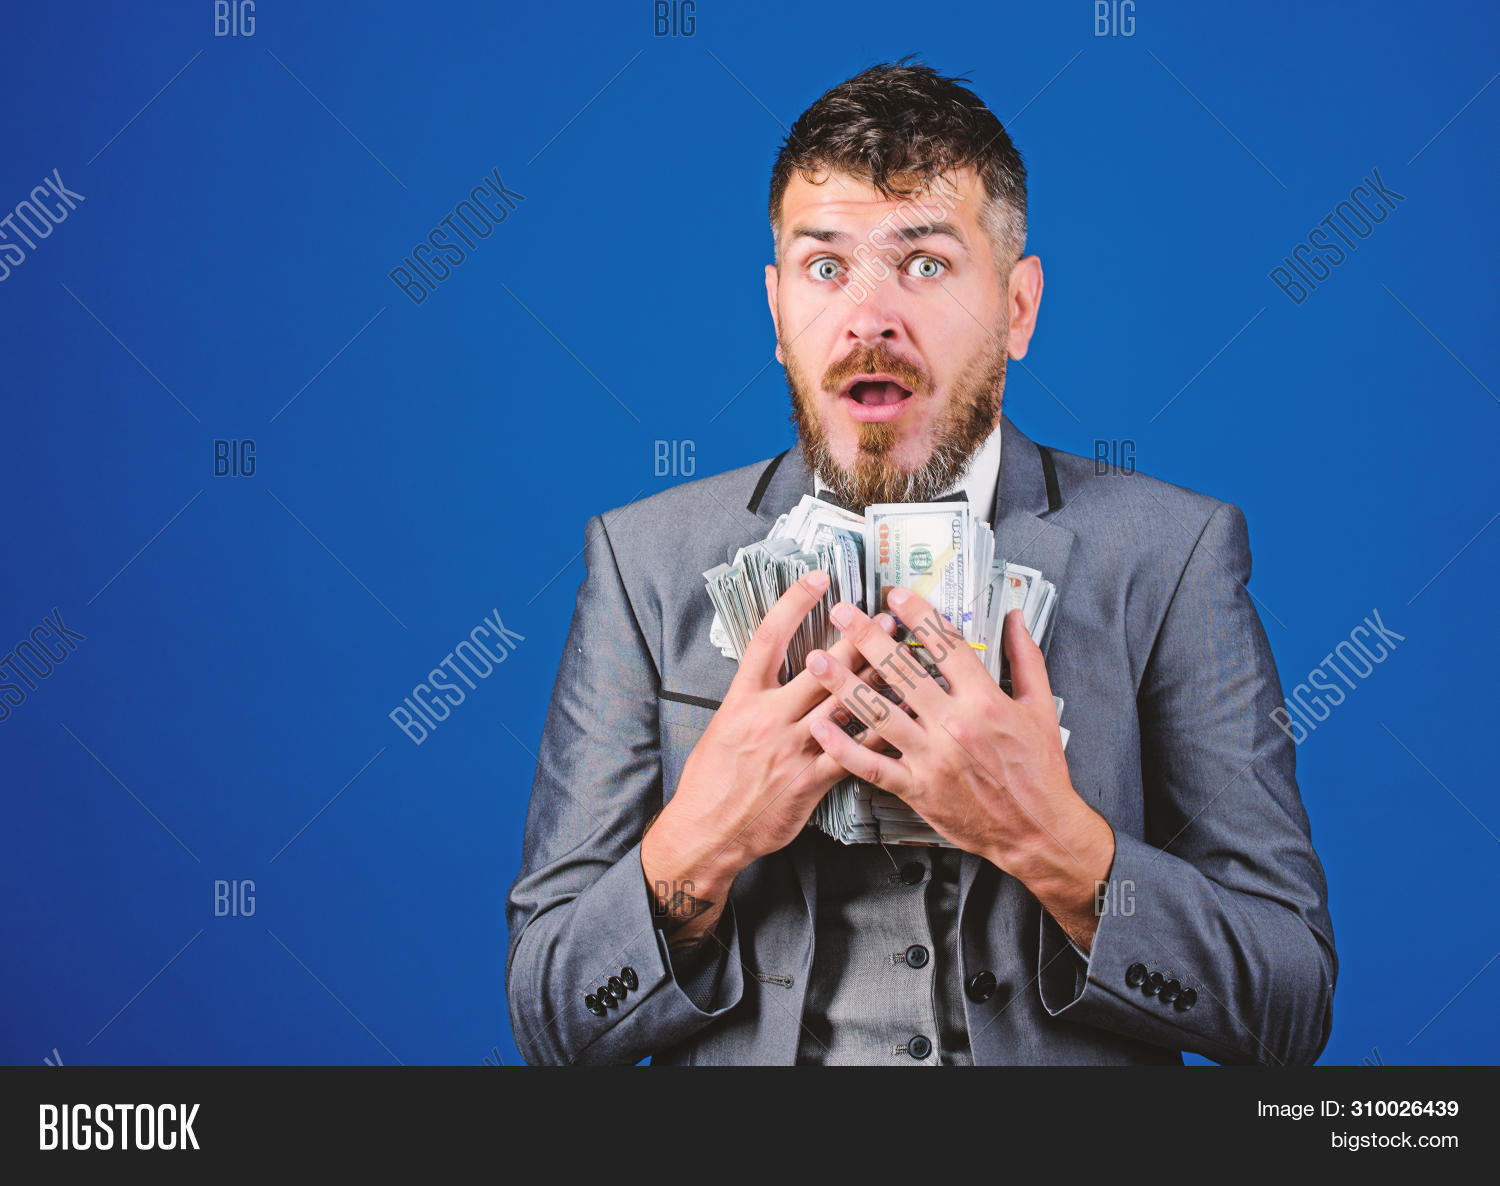 Cash transaction business. Man happy winner rich hold pile of dollar banknotes blue background. Win lottery concept. Easy cash loans. Businessman got cash money. Get cash easy and quickly